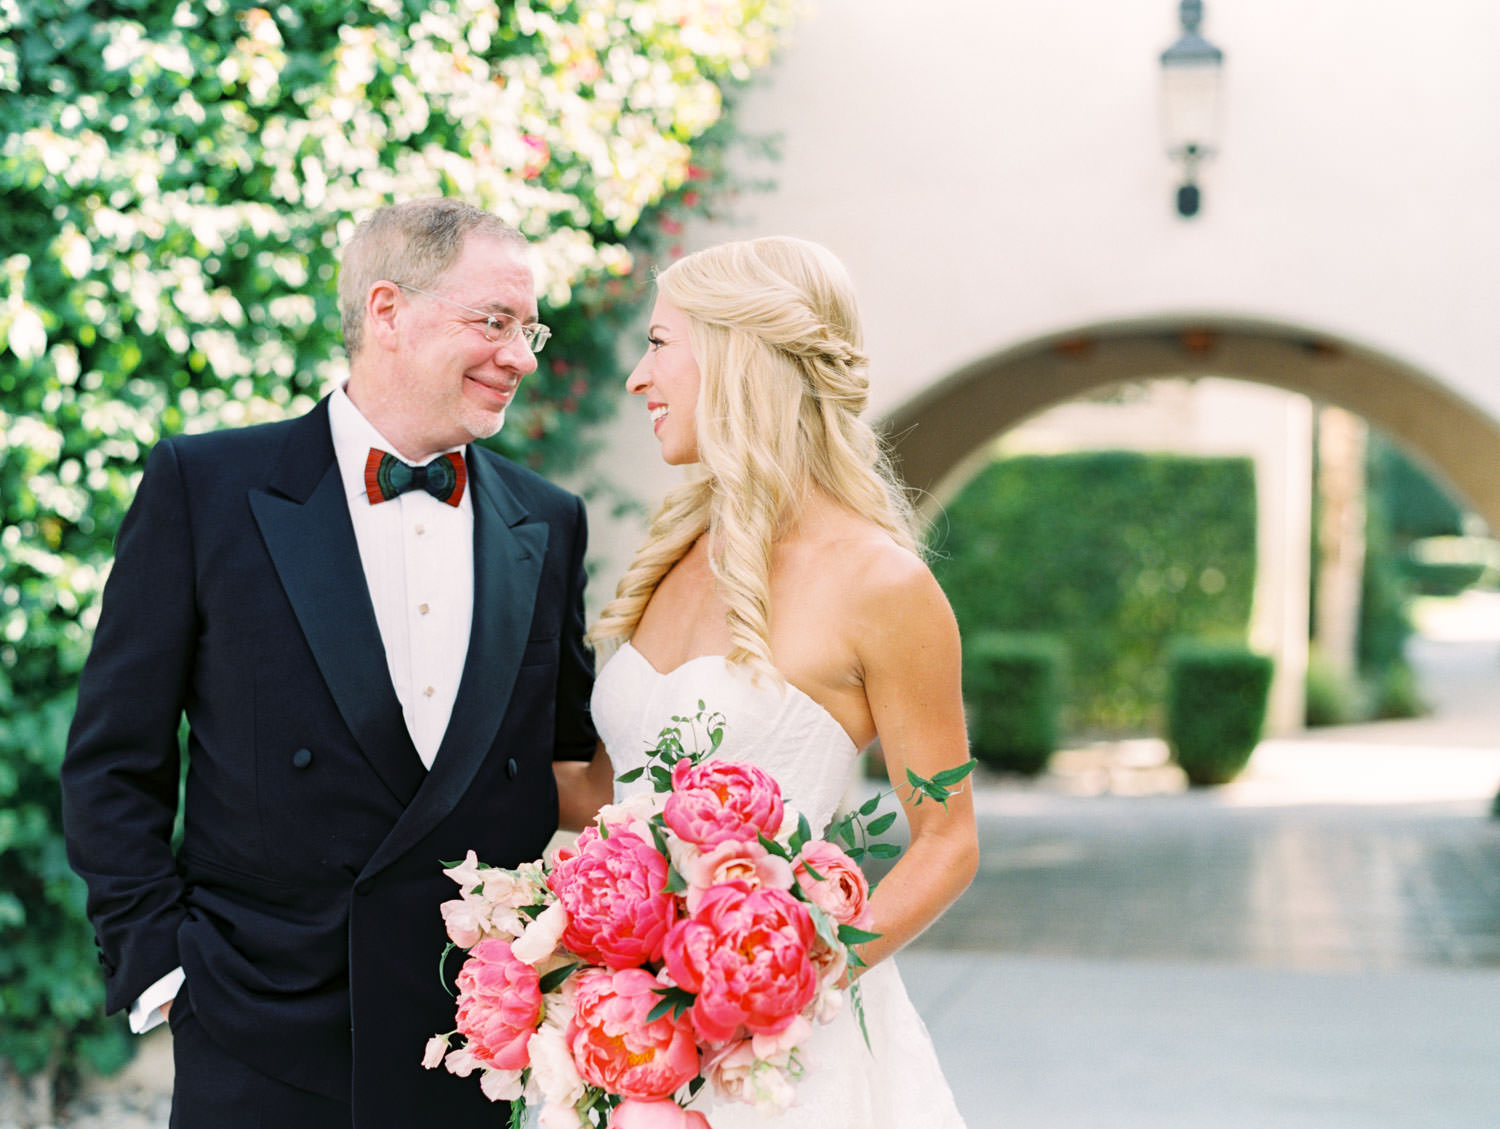 Father of the bride smiling at his daughter wearing a lace Watters sweetheart gown with large bridal bouquet of pink tones with peonies and roses. Miramonte Resort wedding. Film photography by Cavin Elizabeth.